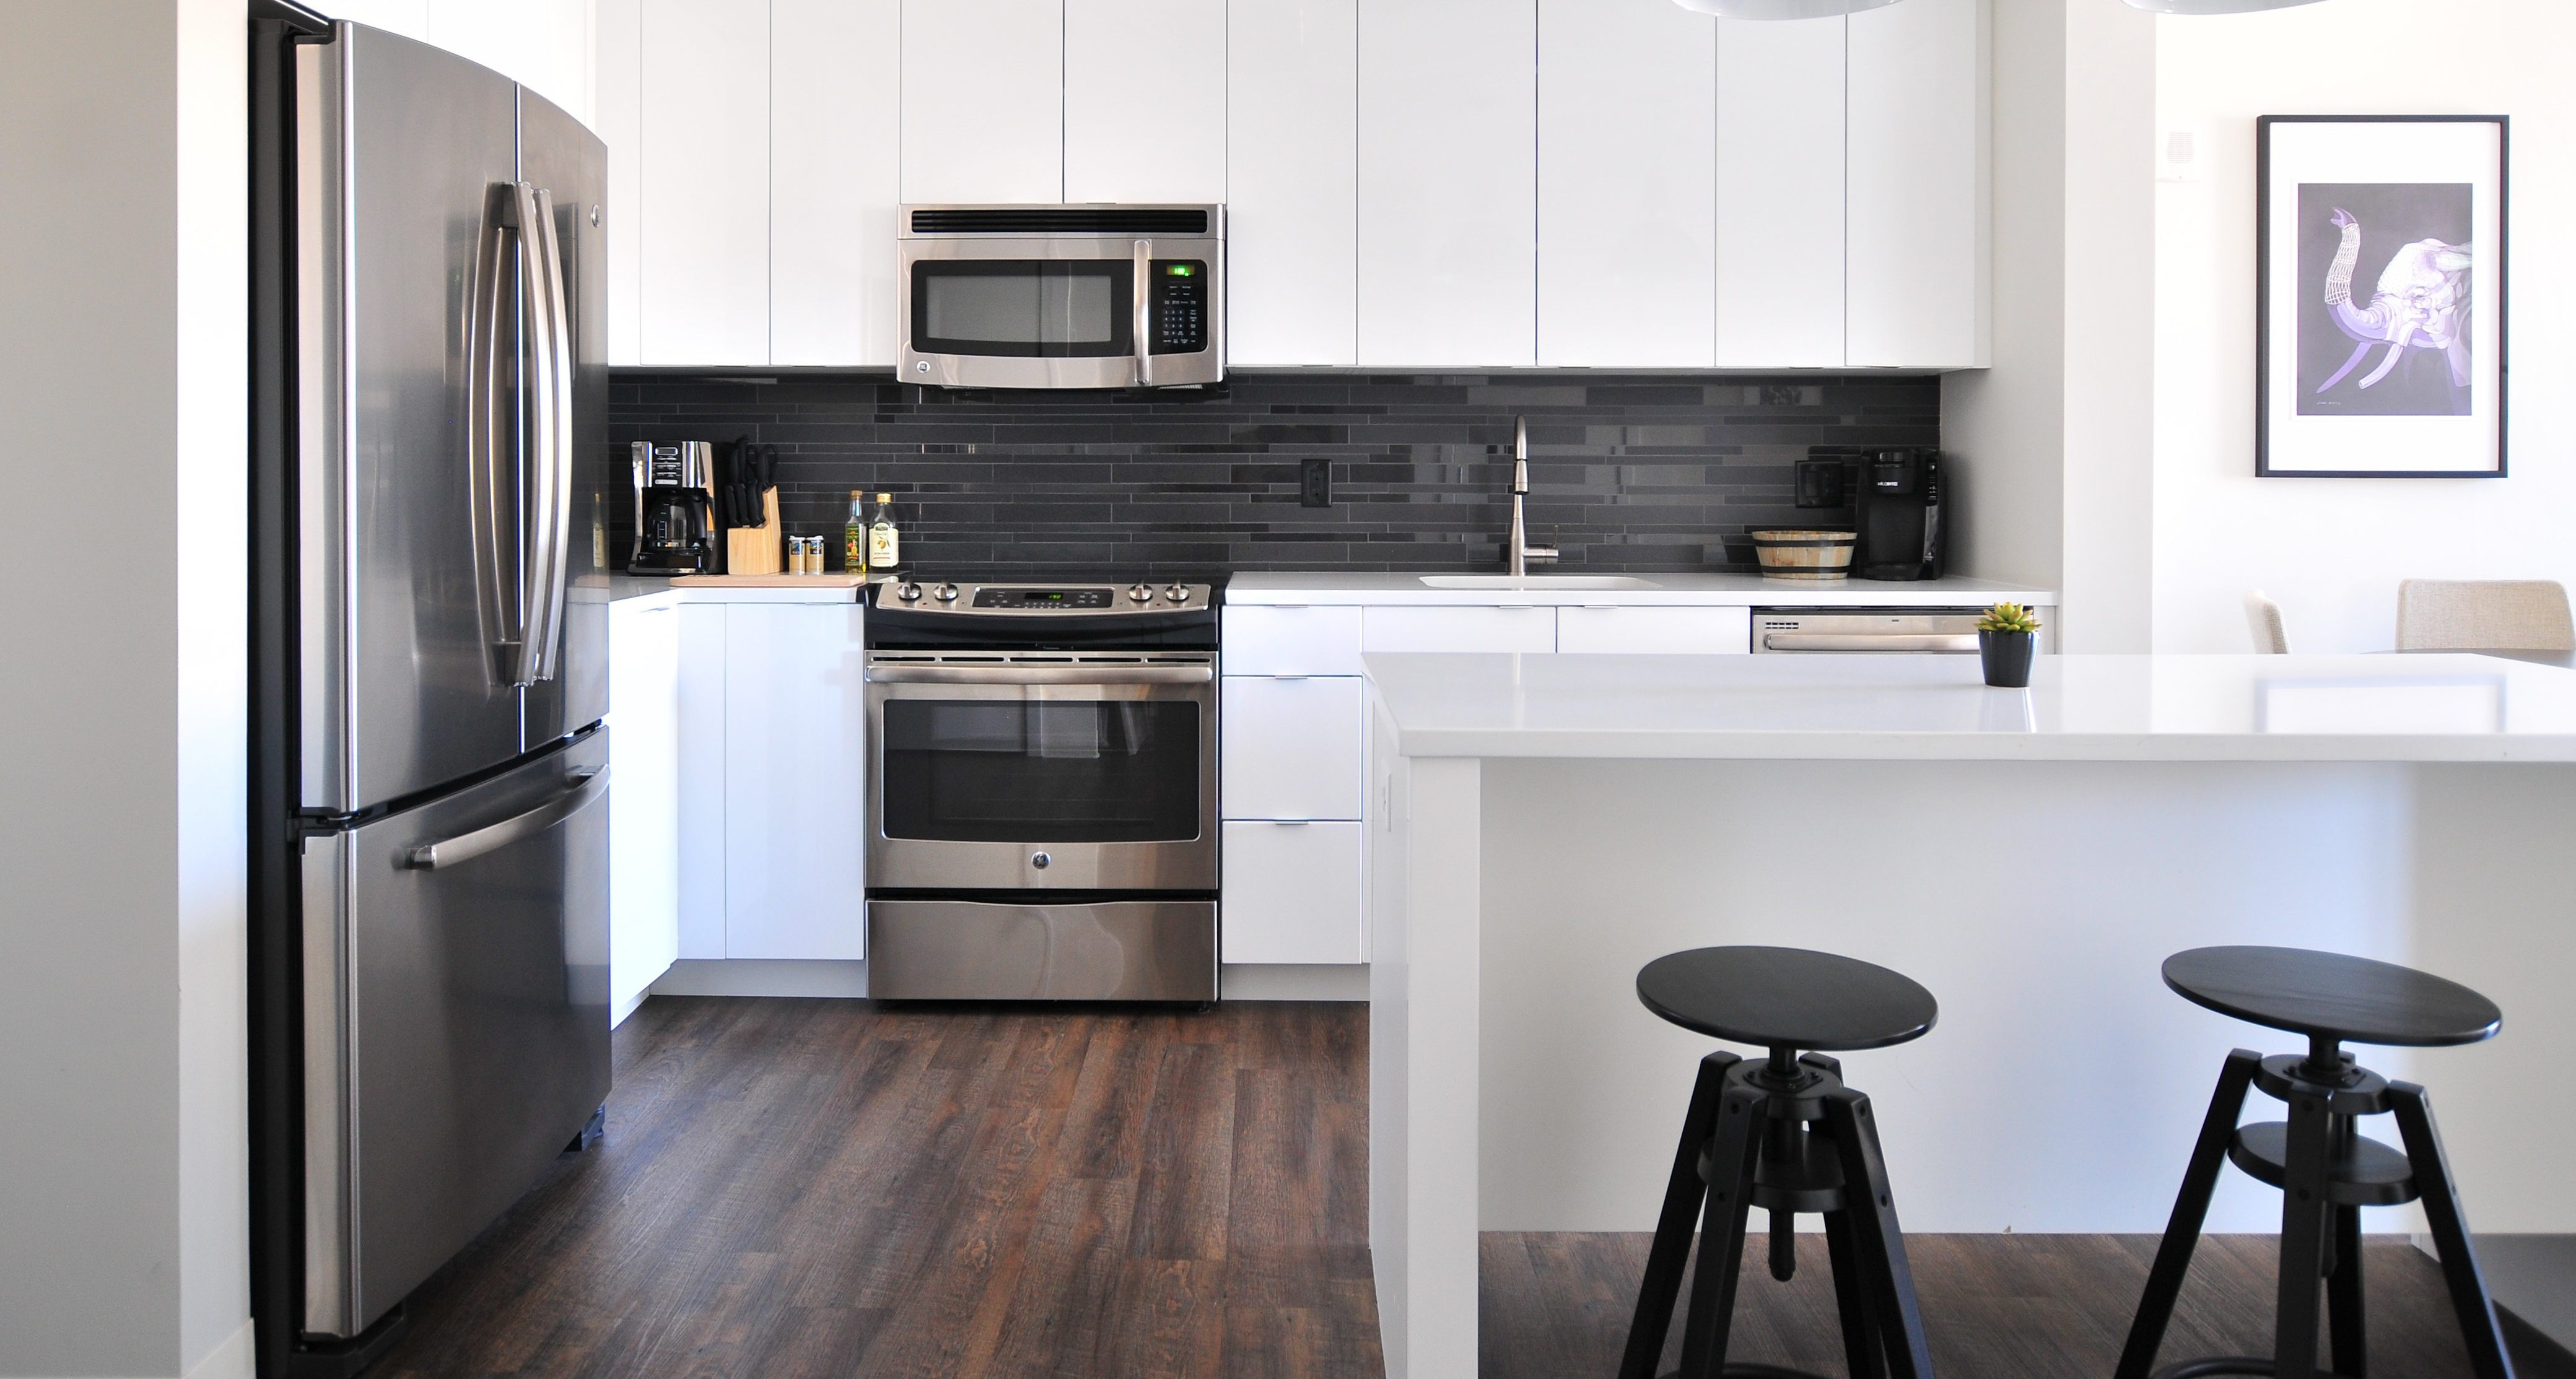 15 Things to Expect When Doing a DIY Renovation